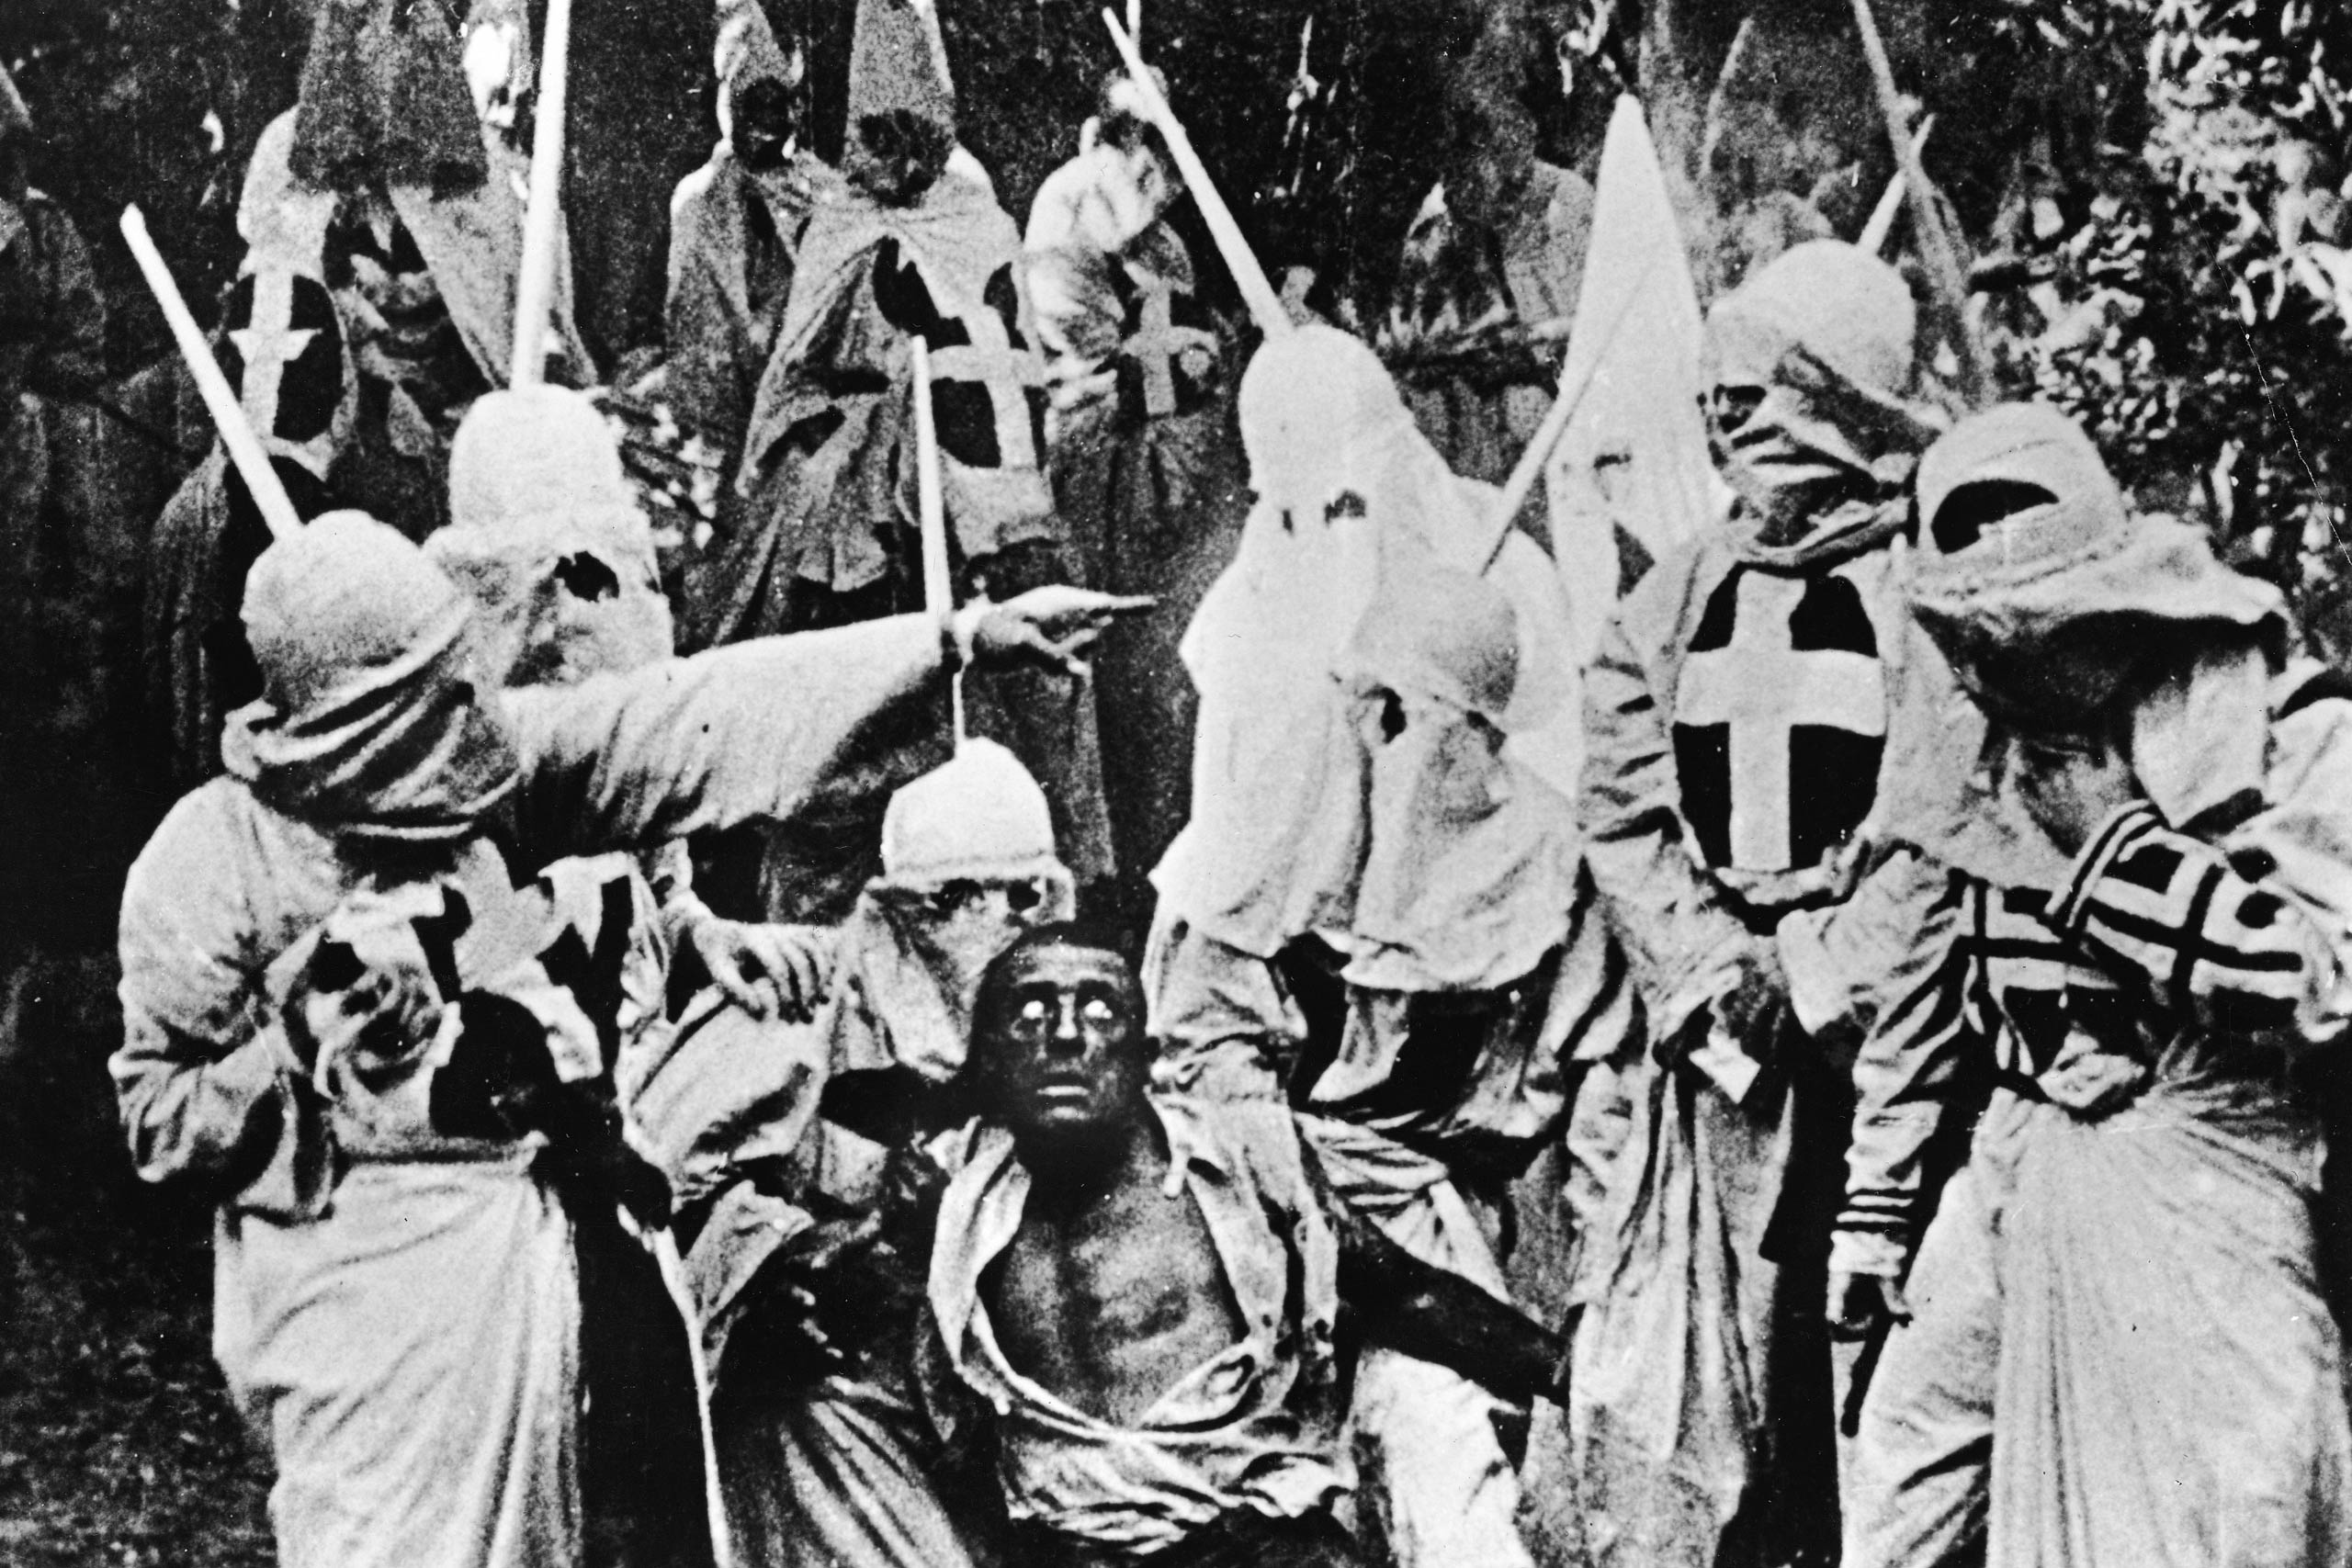 <strong><i>Birth of a Nation</i>, 1915</strong><i> Birth of a Nation</i> is held in high esteem as one of the most ambitious and innovative early films. It has also, in the near-century since its release, been derided for its use of blackface to depict black men as sexually rapacious and its characterization of the KKK as heroes. Is it possible to admire a film's technical excellence while acknowledging that its content is deeply offensive? Many film scholars, who point to <i>Birth of a Nation</i> as part of the foundation of modern film, believe so.